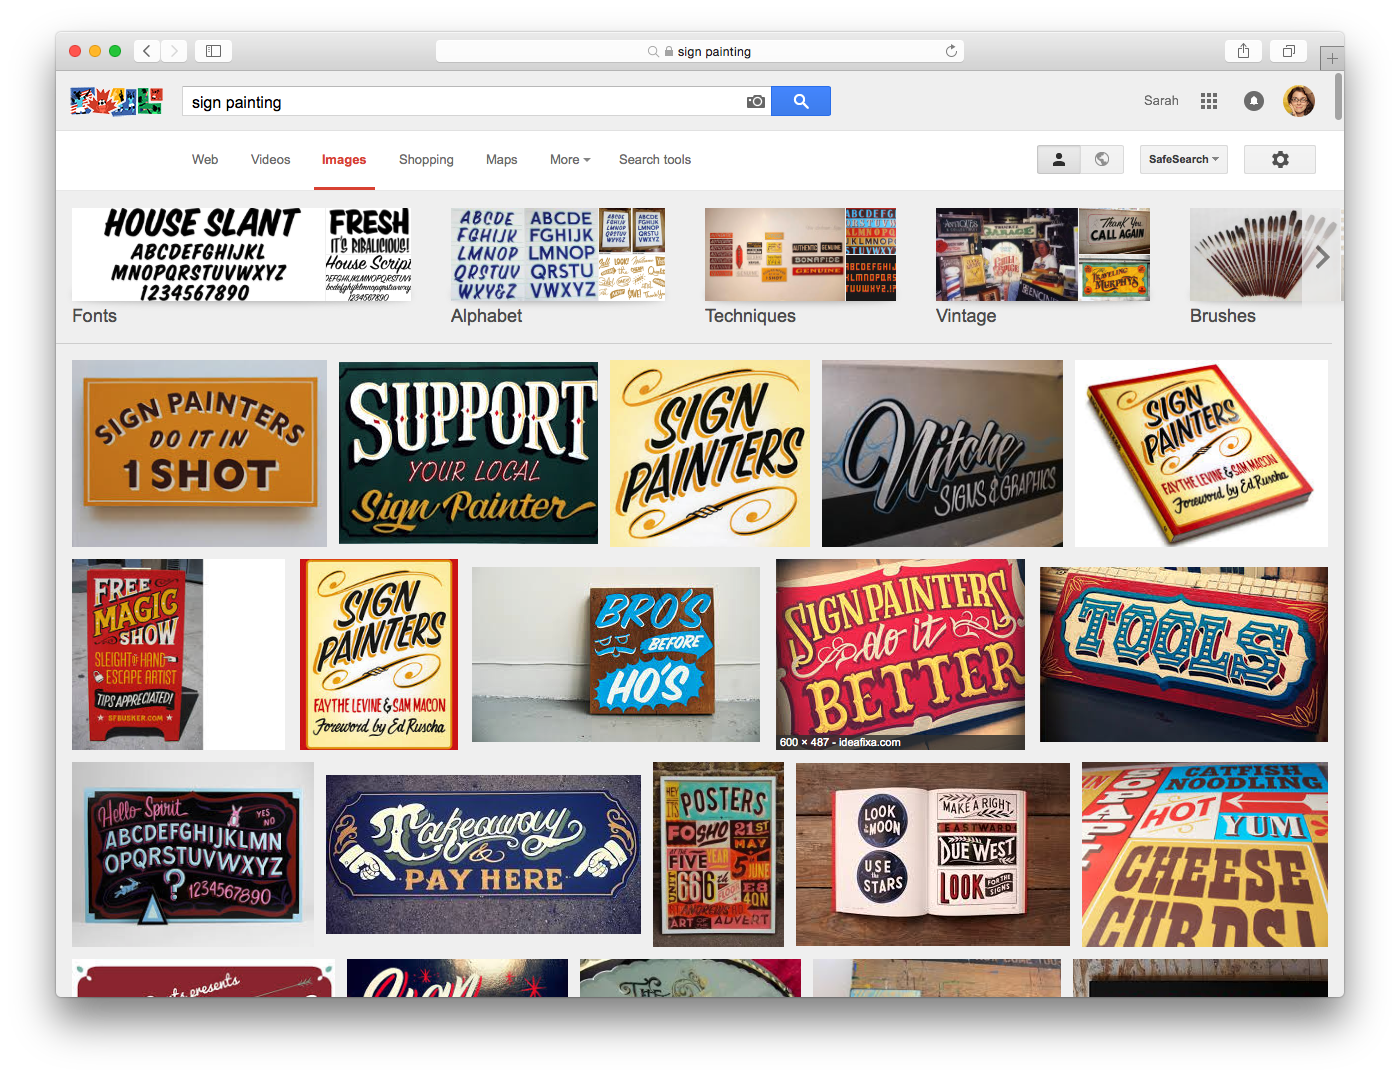 Learn Sign Painting With These Resources